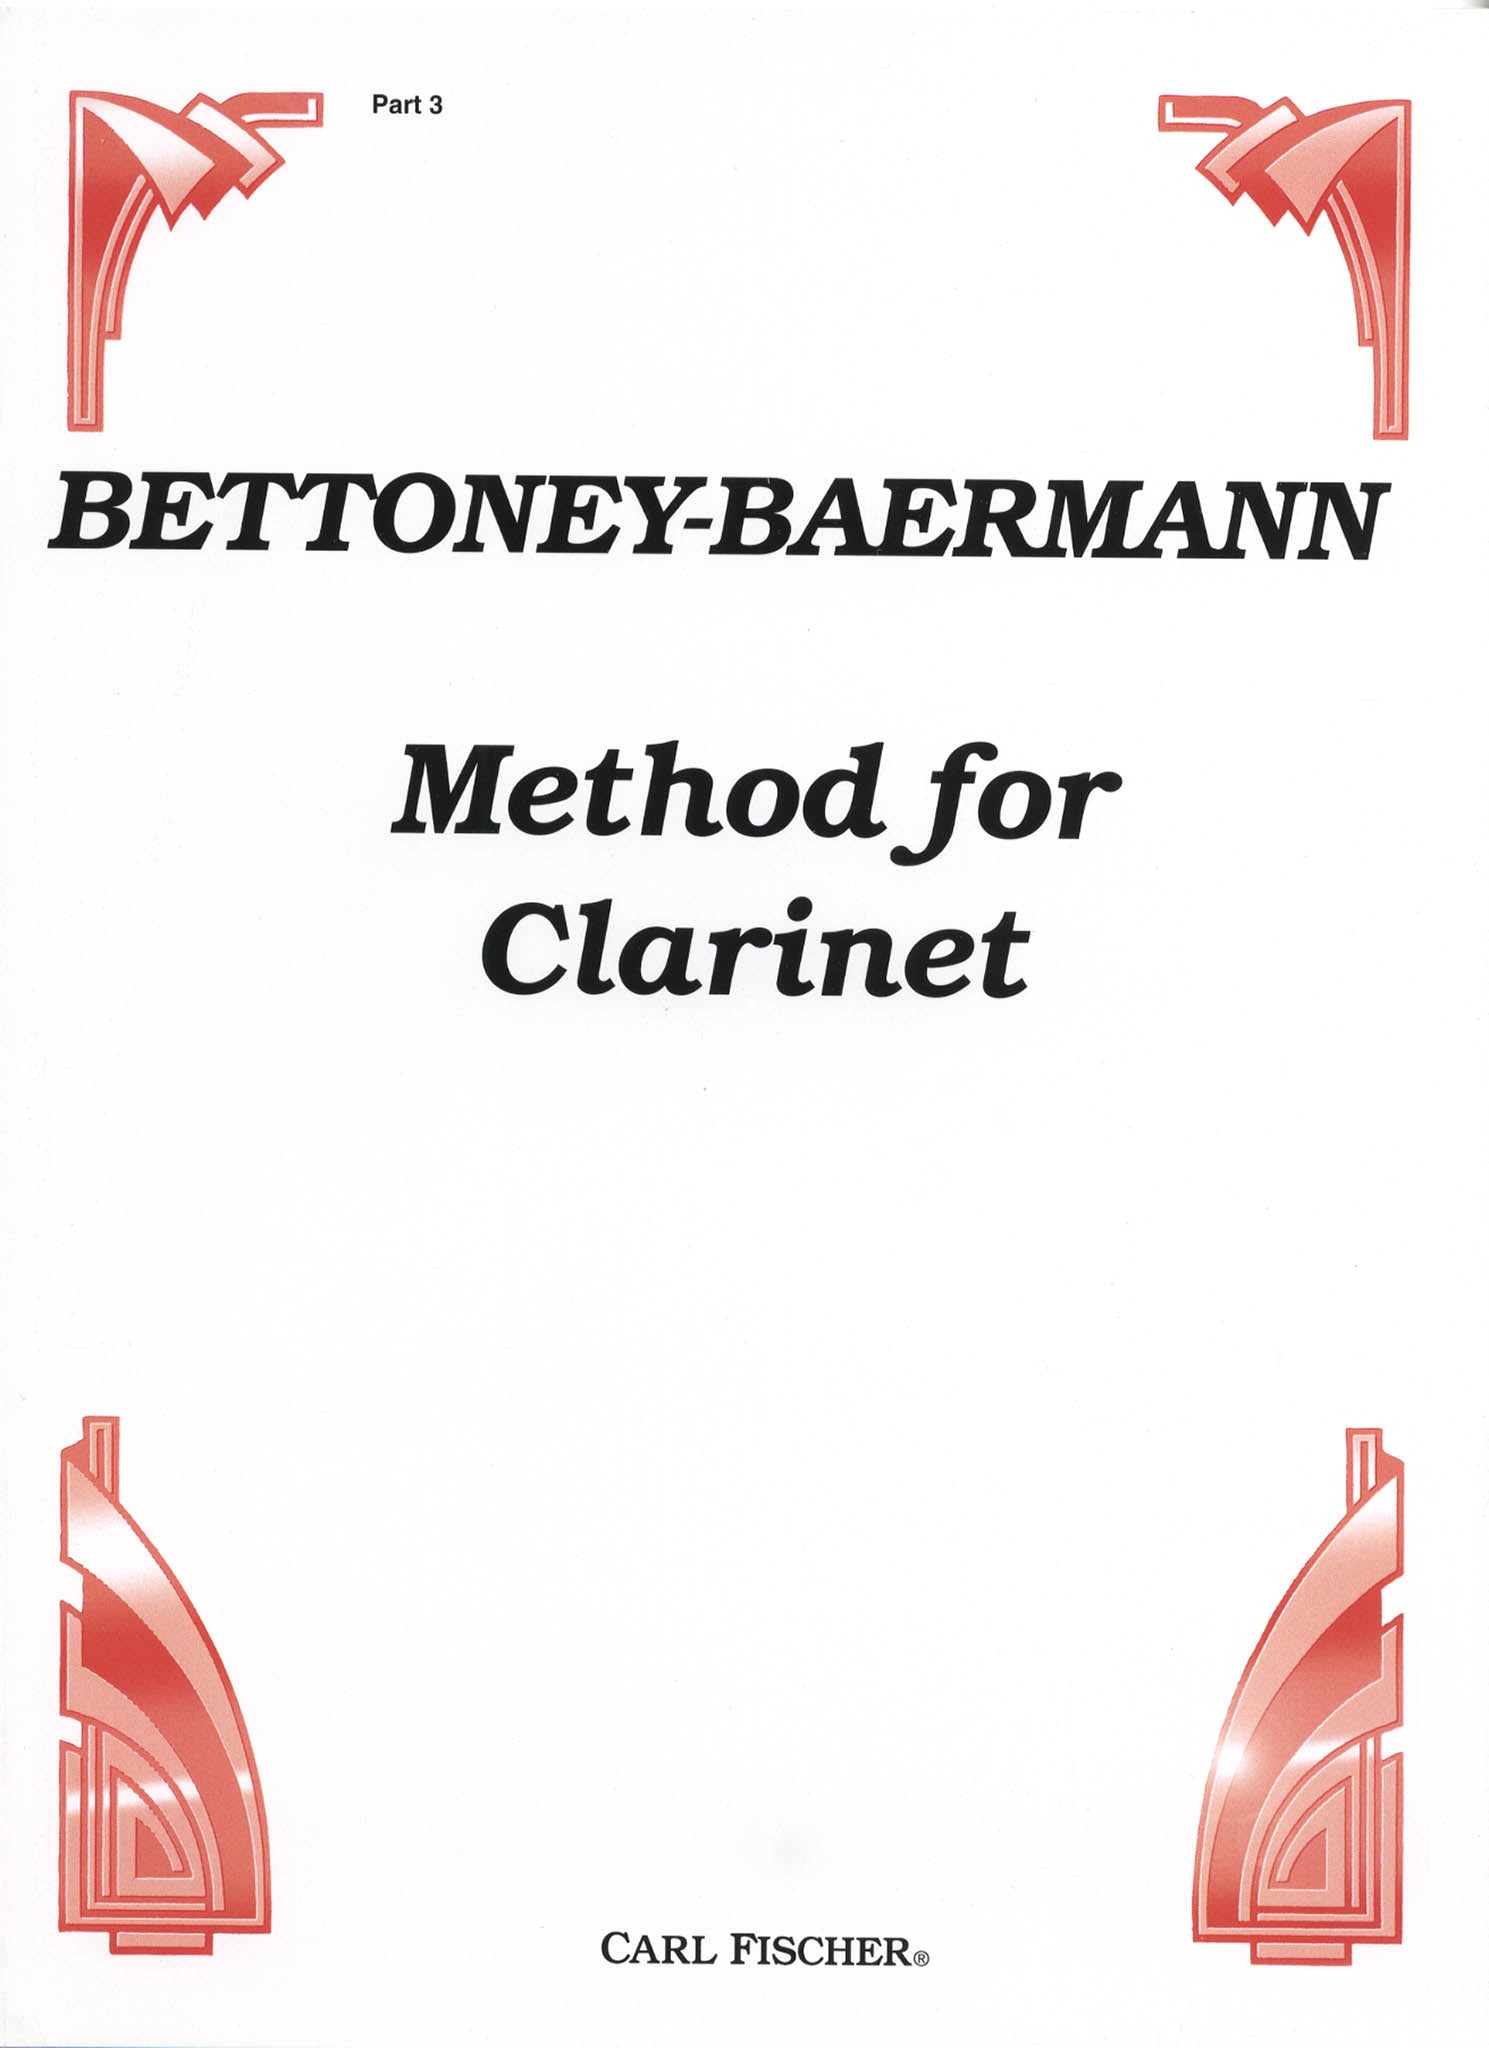 Complete Clarinet Method, Op. 63: Division 3 (Daily Studies) Cover